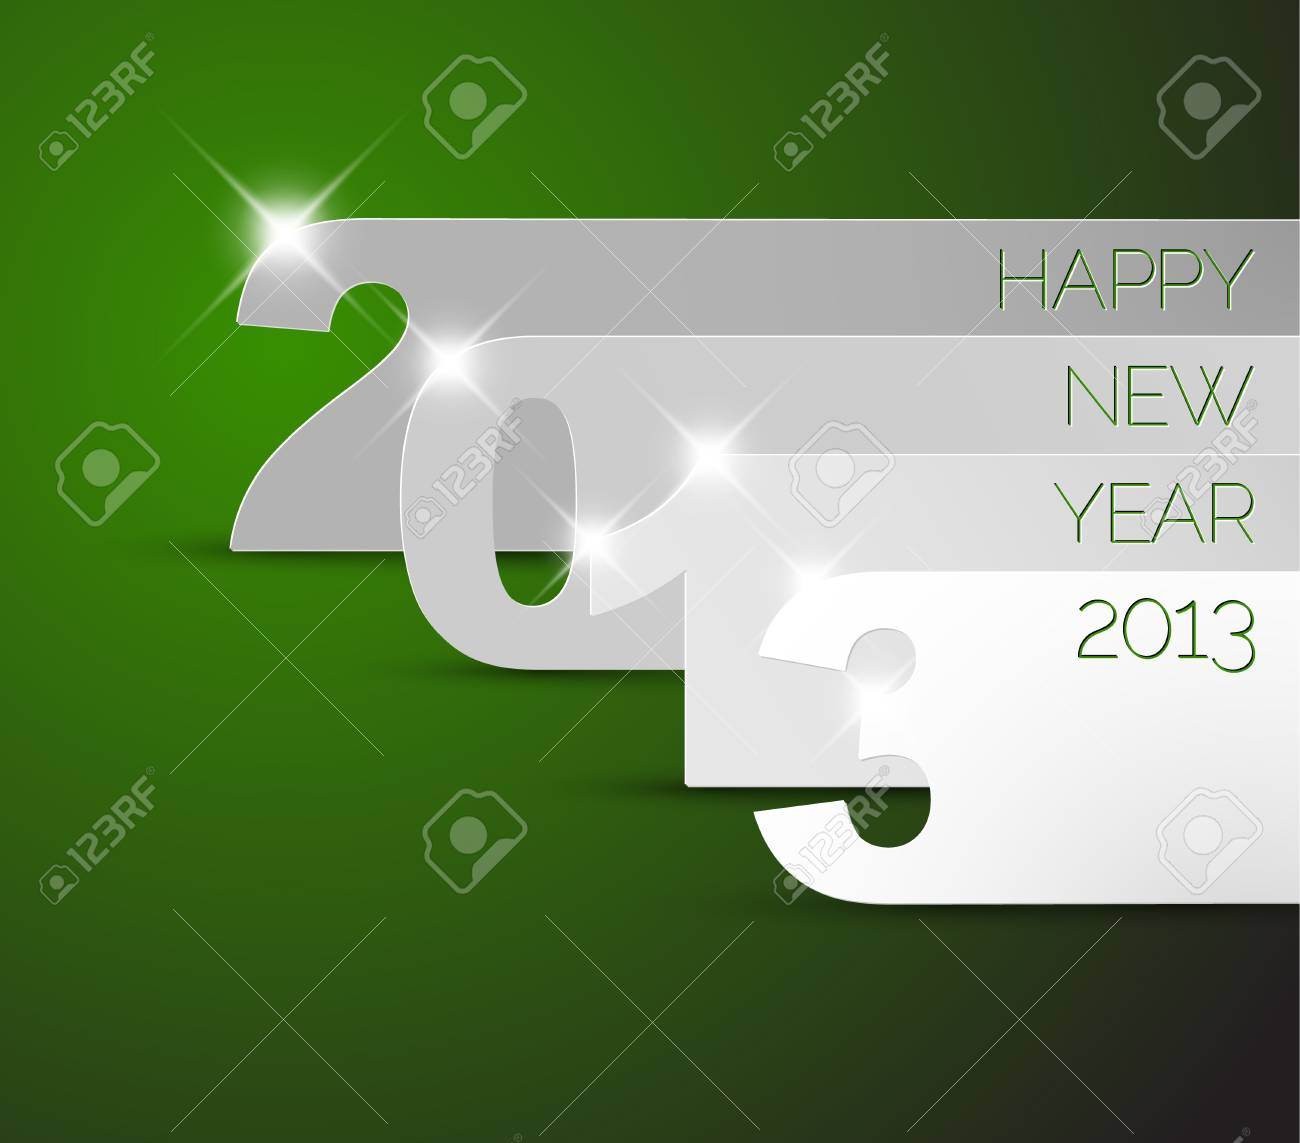 Green and white Happy New Year 2013 Stock Vector - 15553750